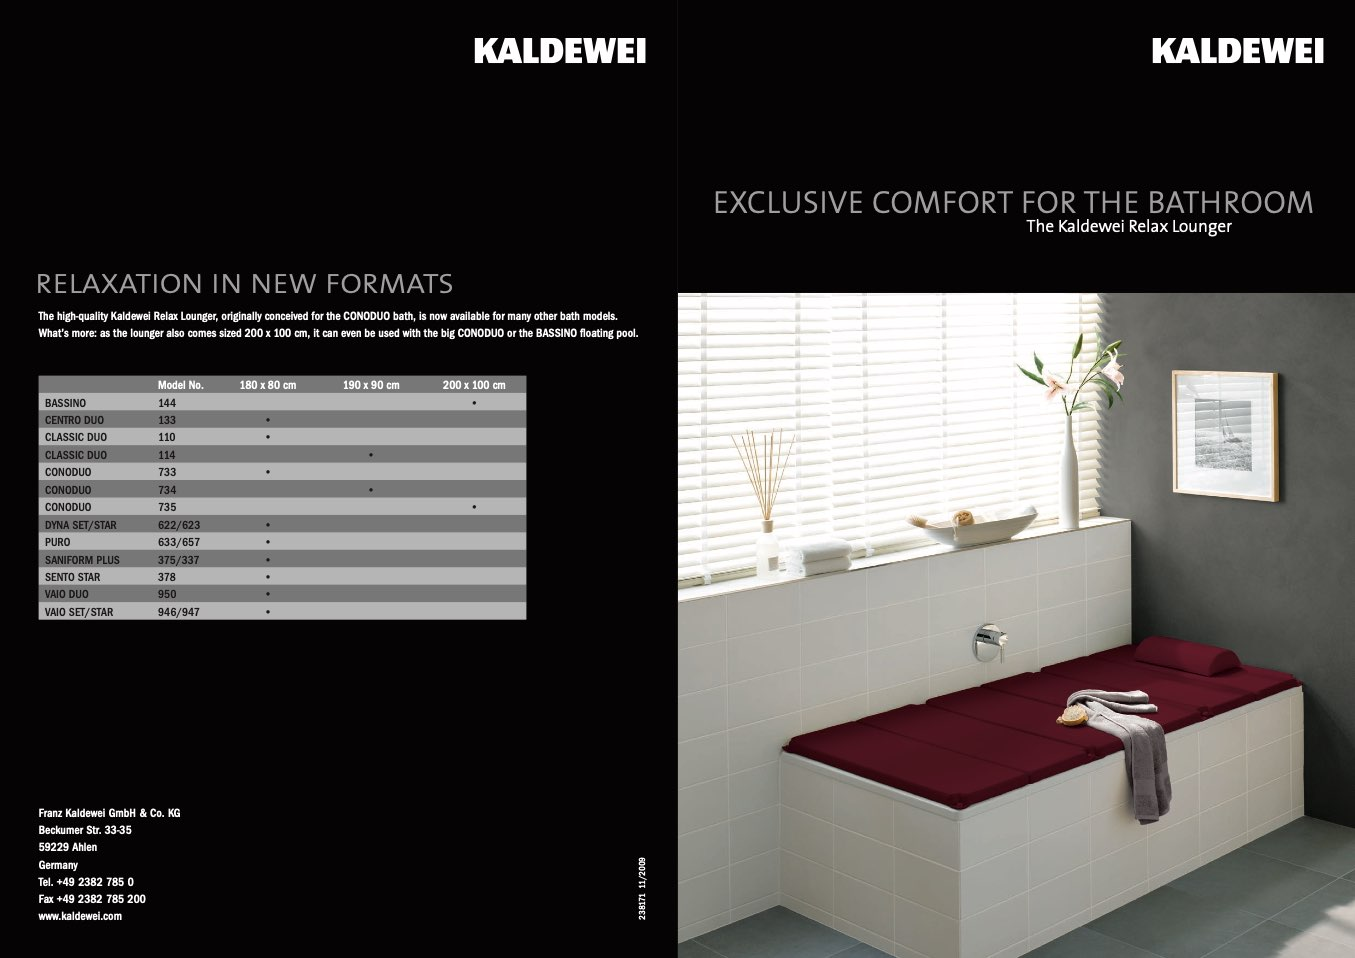 Kaldewei Conoduo Kaldewei Exclusive Comfort For The Bathroom Relax Lounger